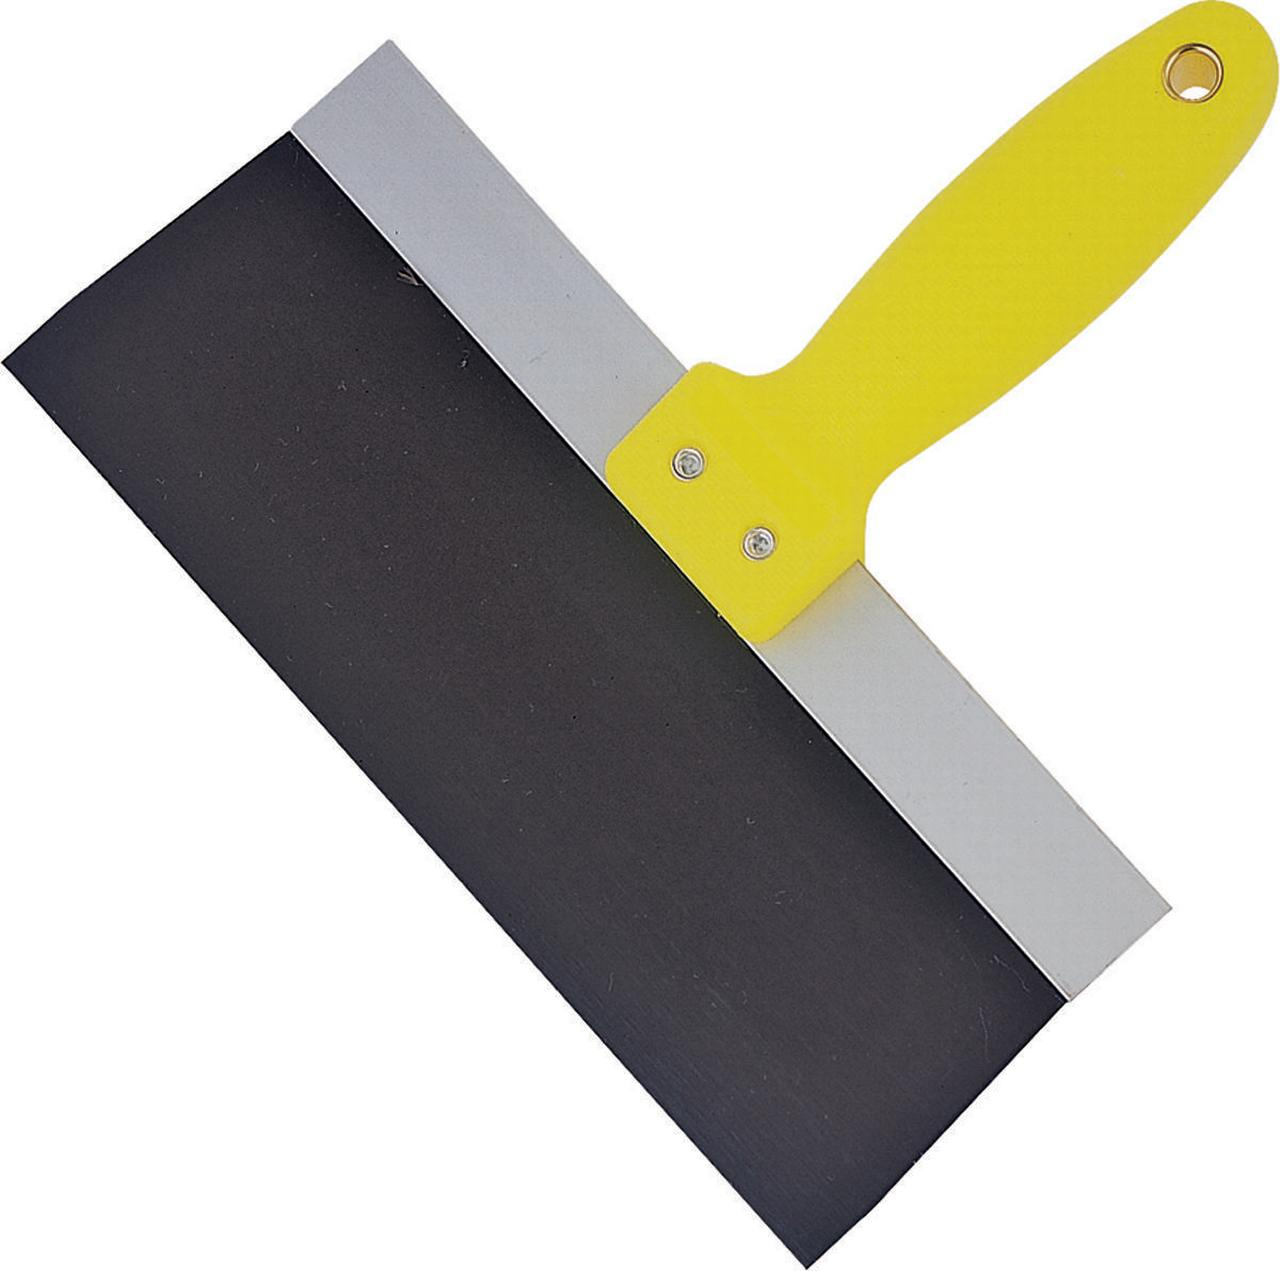 ProSource 37002Y3L Drywall Taping Knife, 10 in W x 3 in L, Steel Hi-Visibility Steel